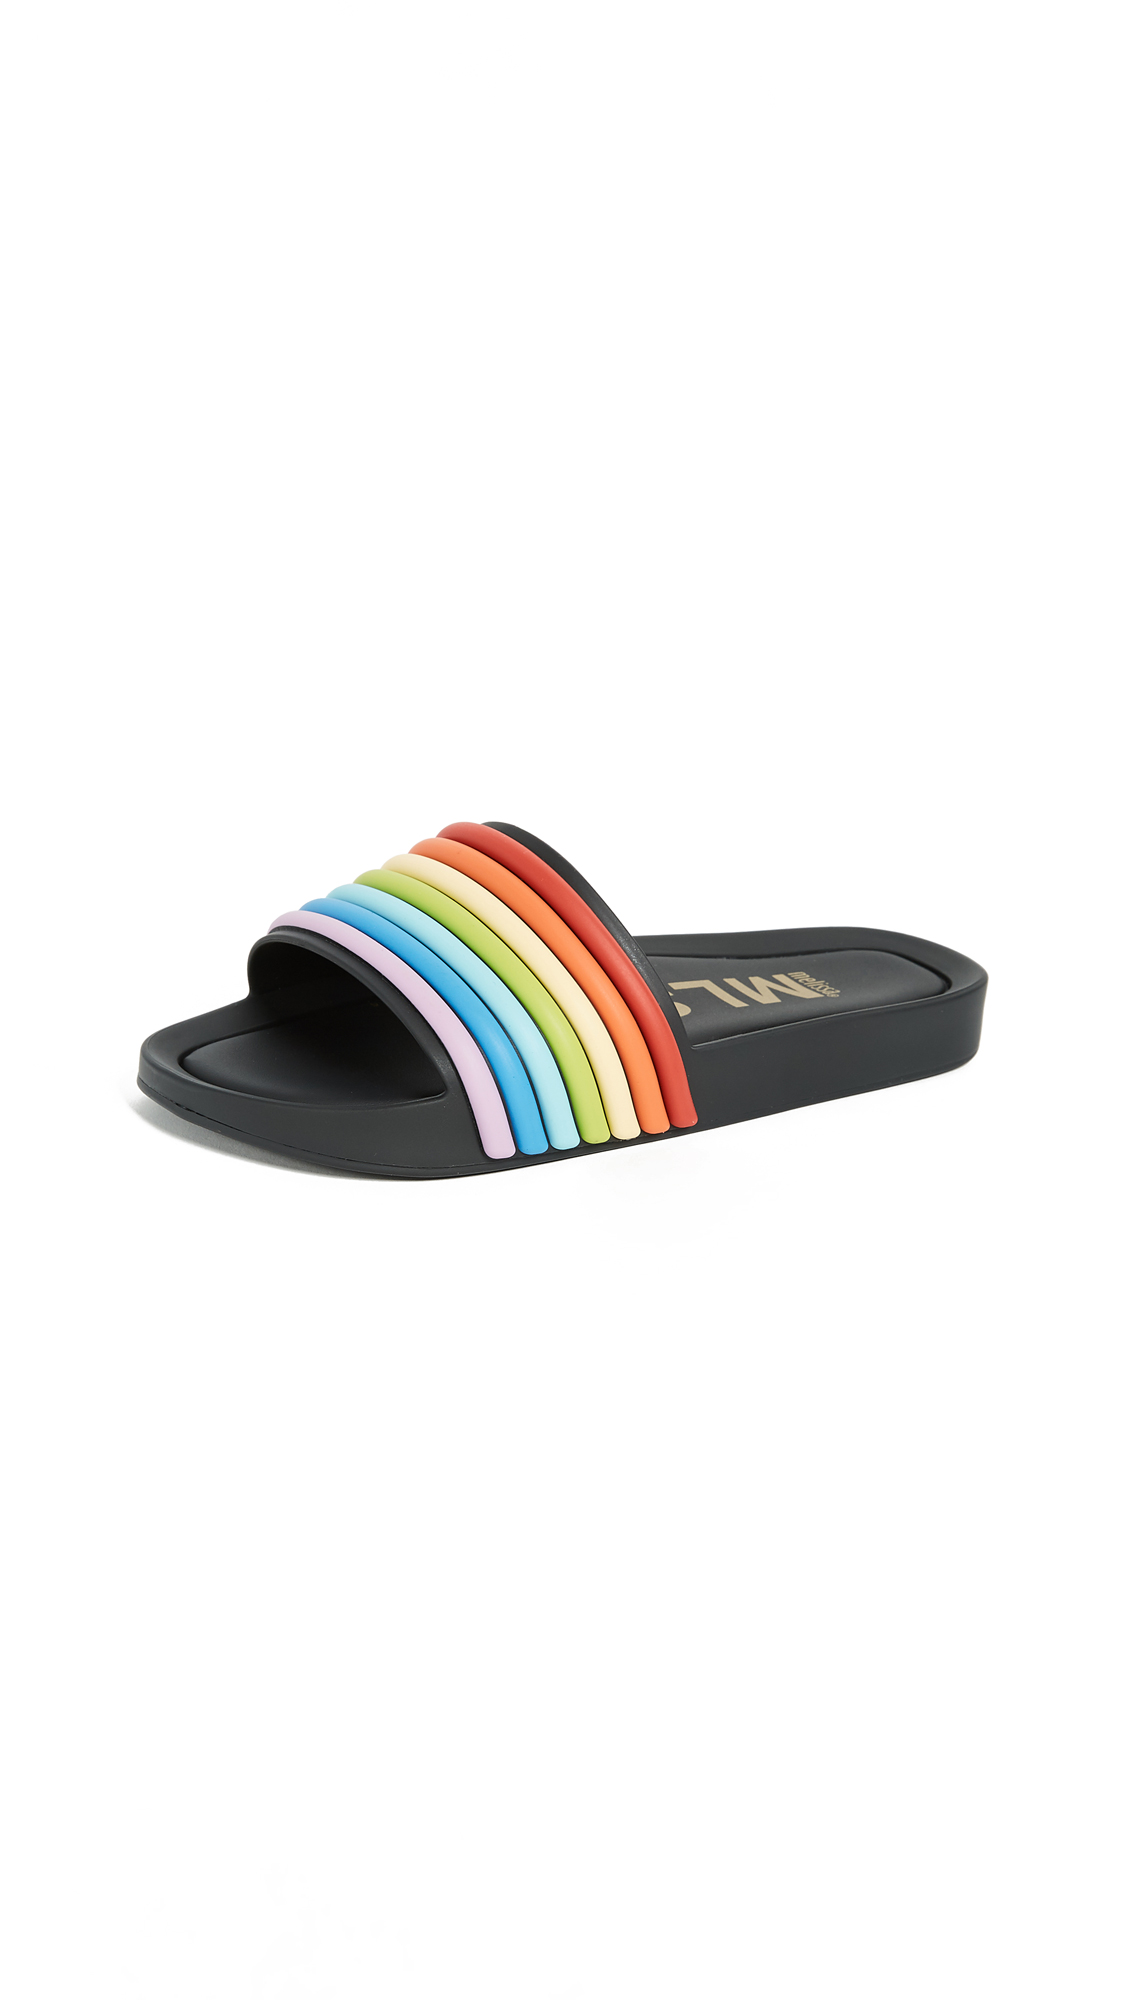 Melissa Beach 3DB Rain Slides - Black Multicolor